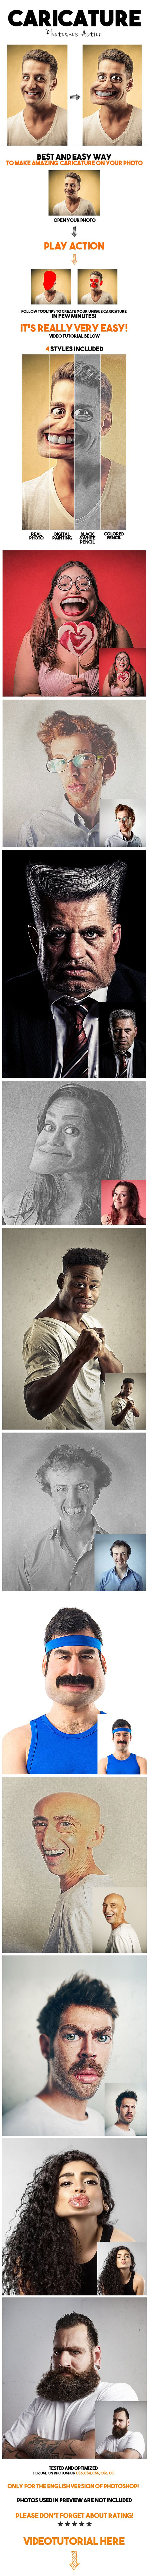 Caricature Photoshop Action - Photo Effects Actions